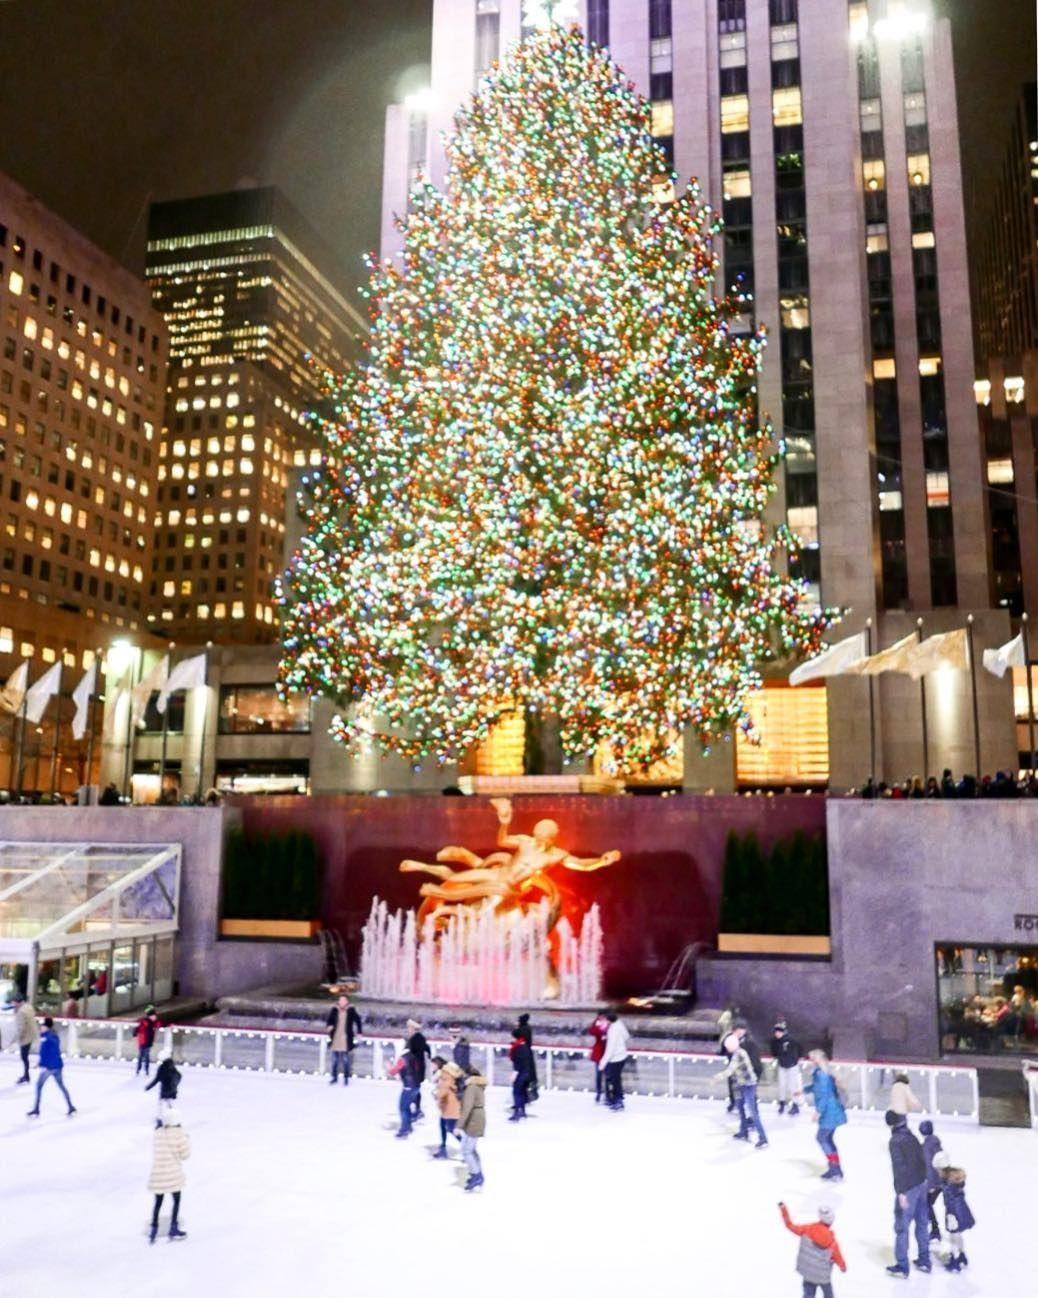 Rockefeller Christmas Tree 2018 Wallpapers - Wallpaper Cave